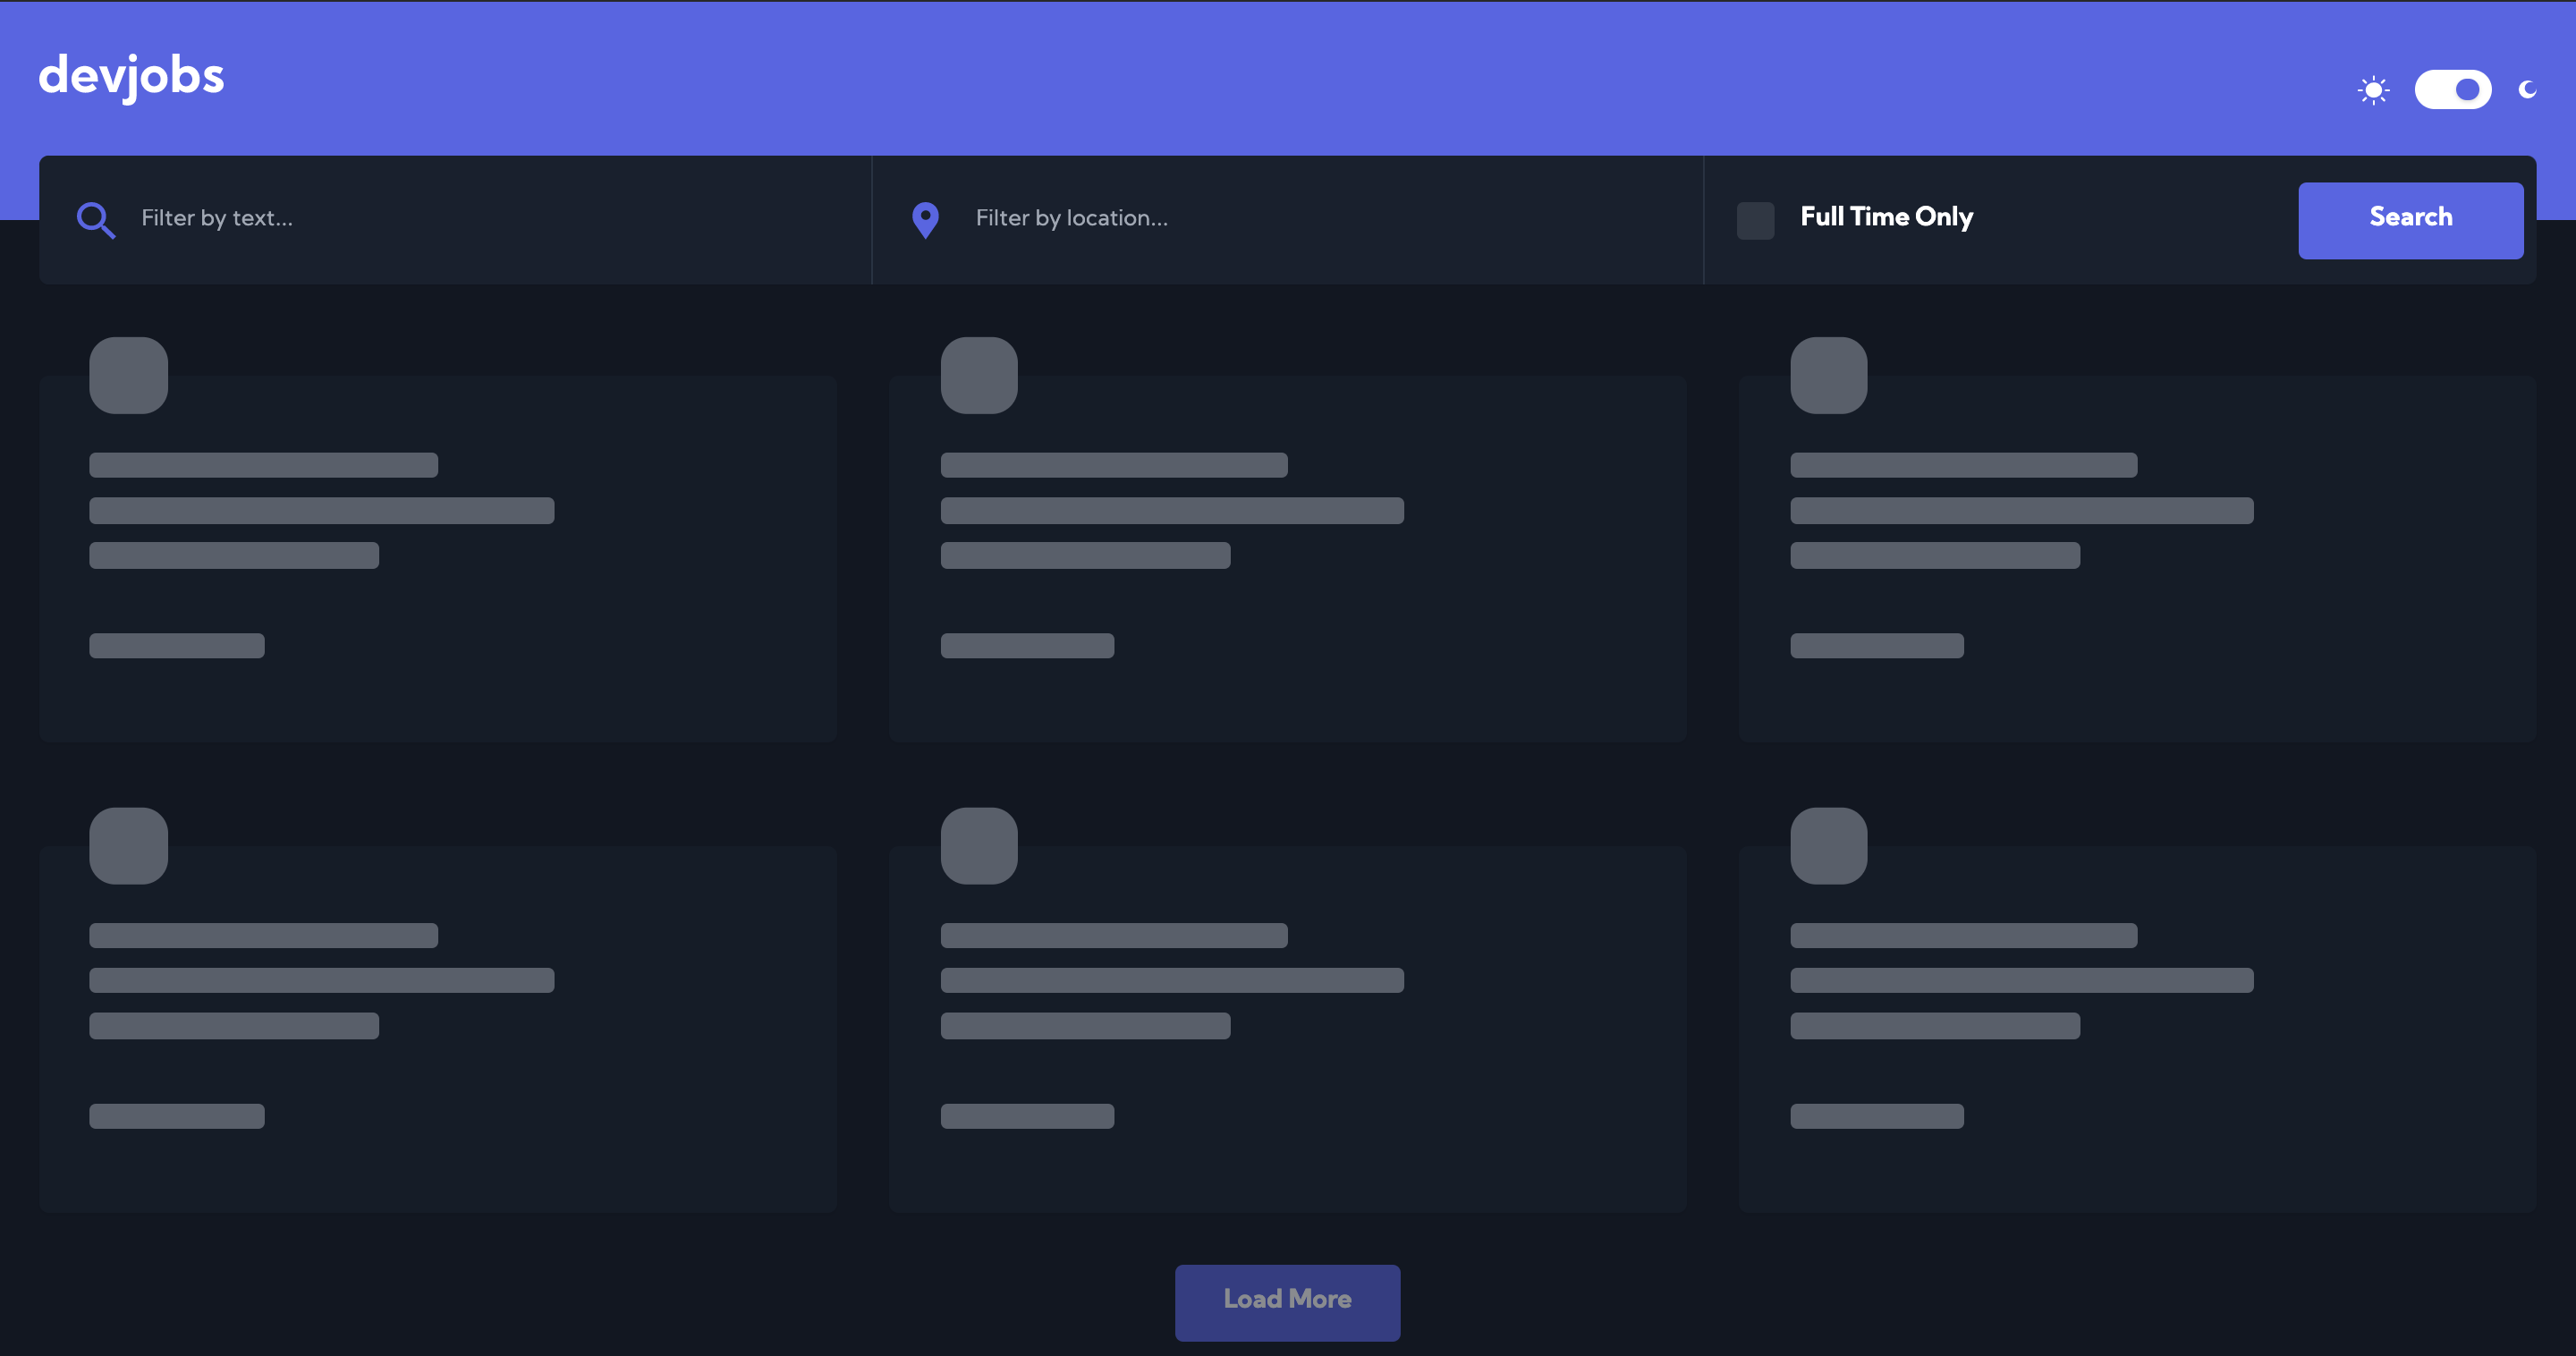 Loading Home Page - Dark Mode